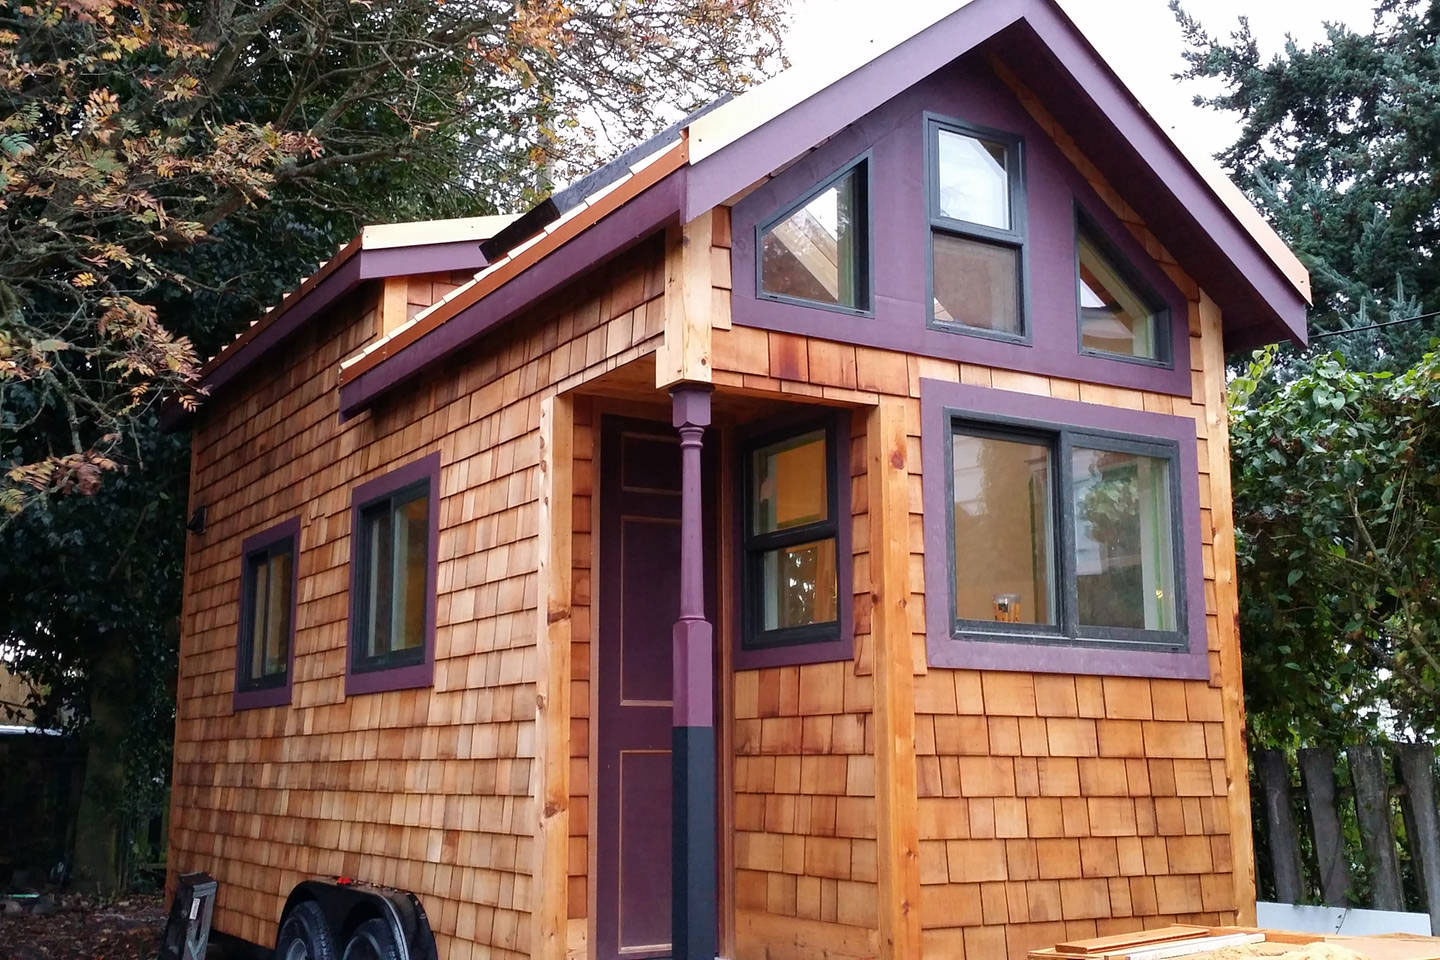 Stay in hannah 39 s tiny house in seattle small is beautiful for Building a little house